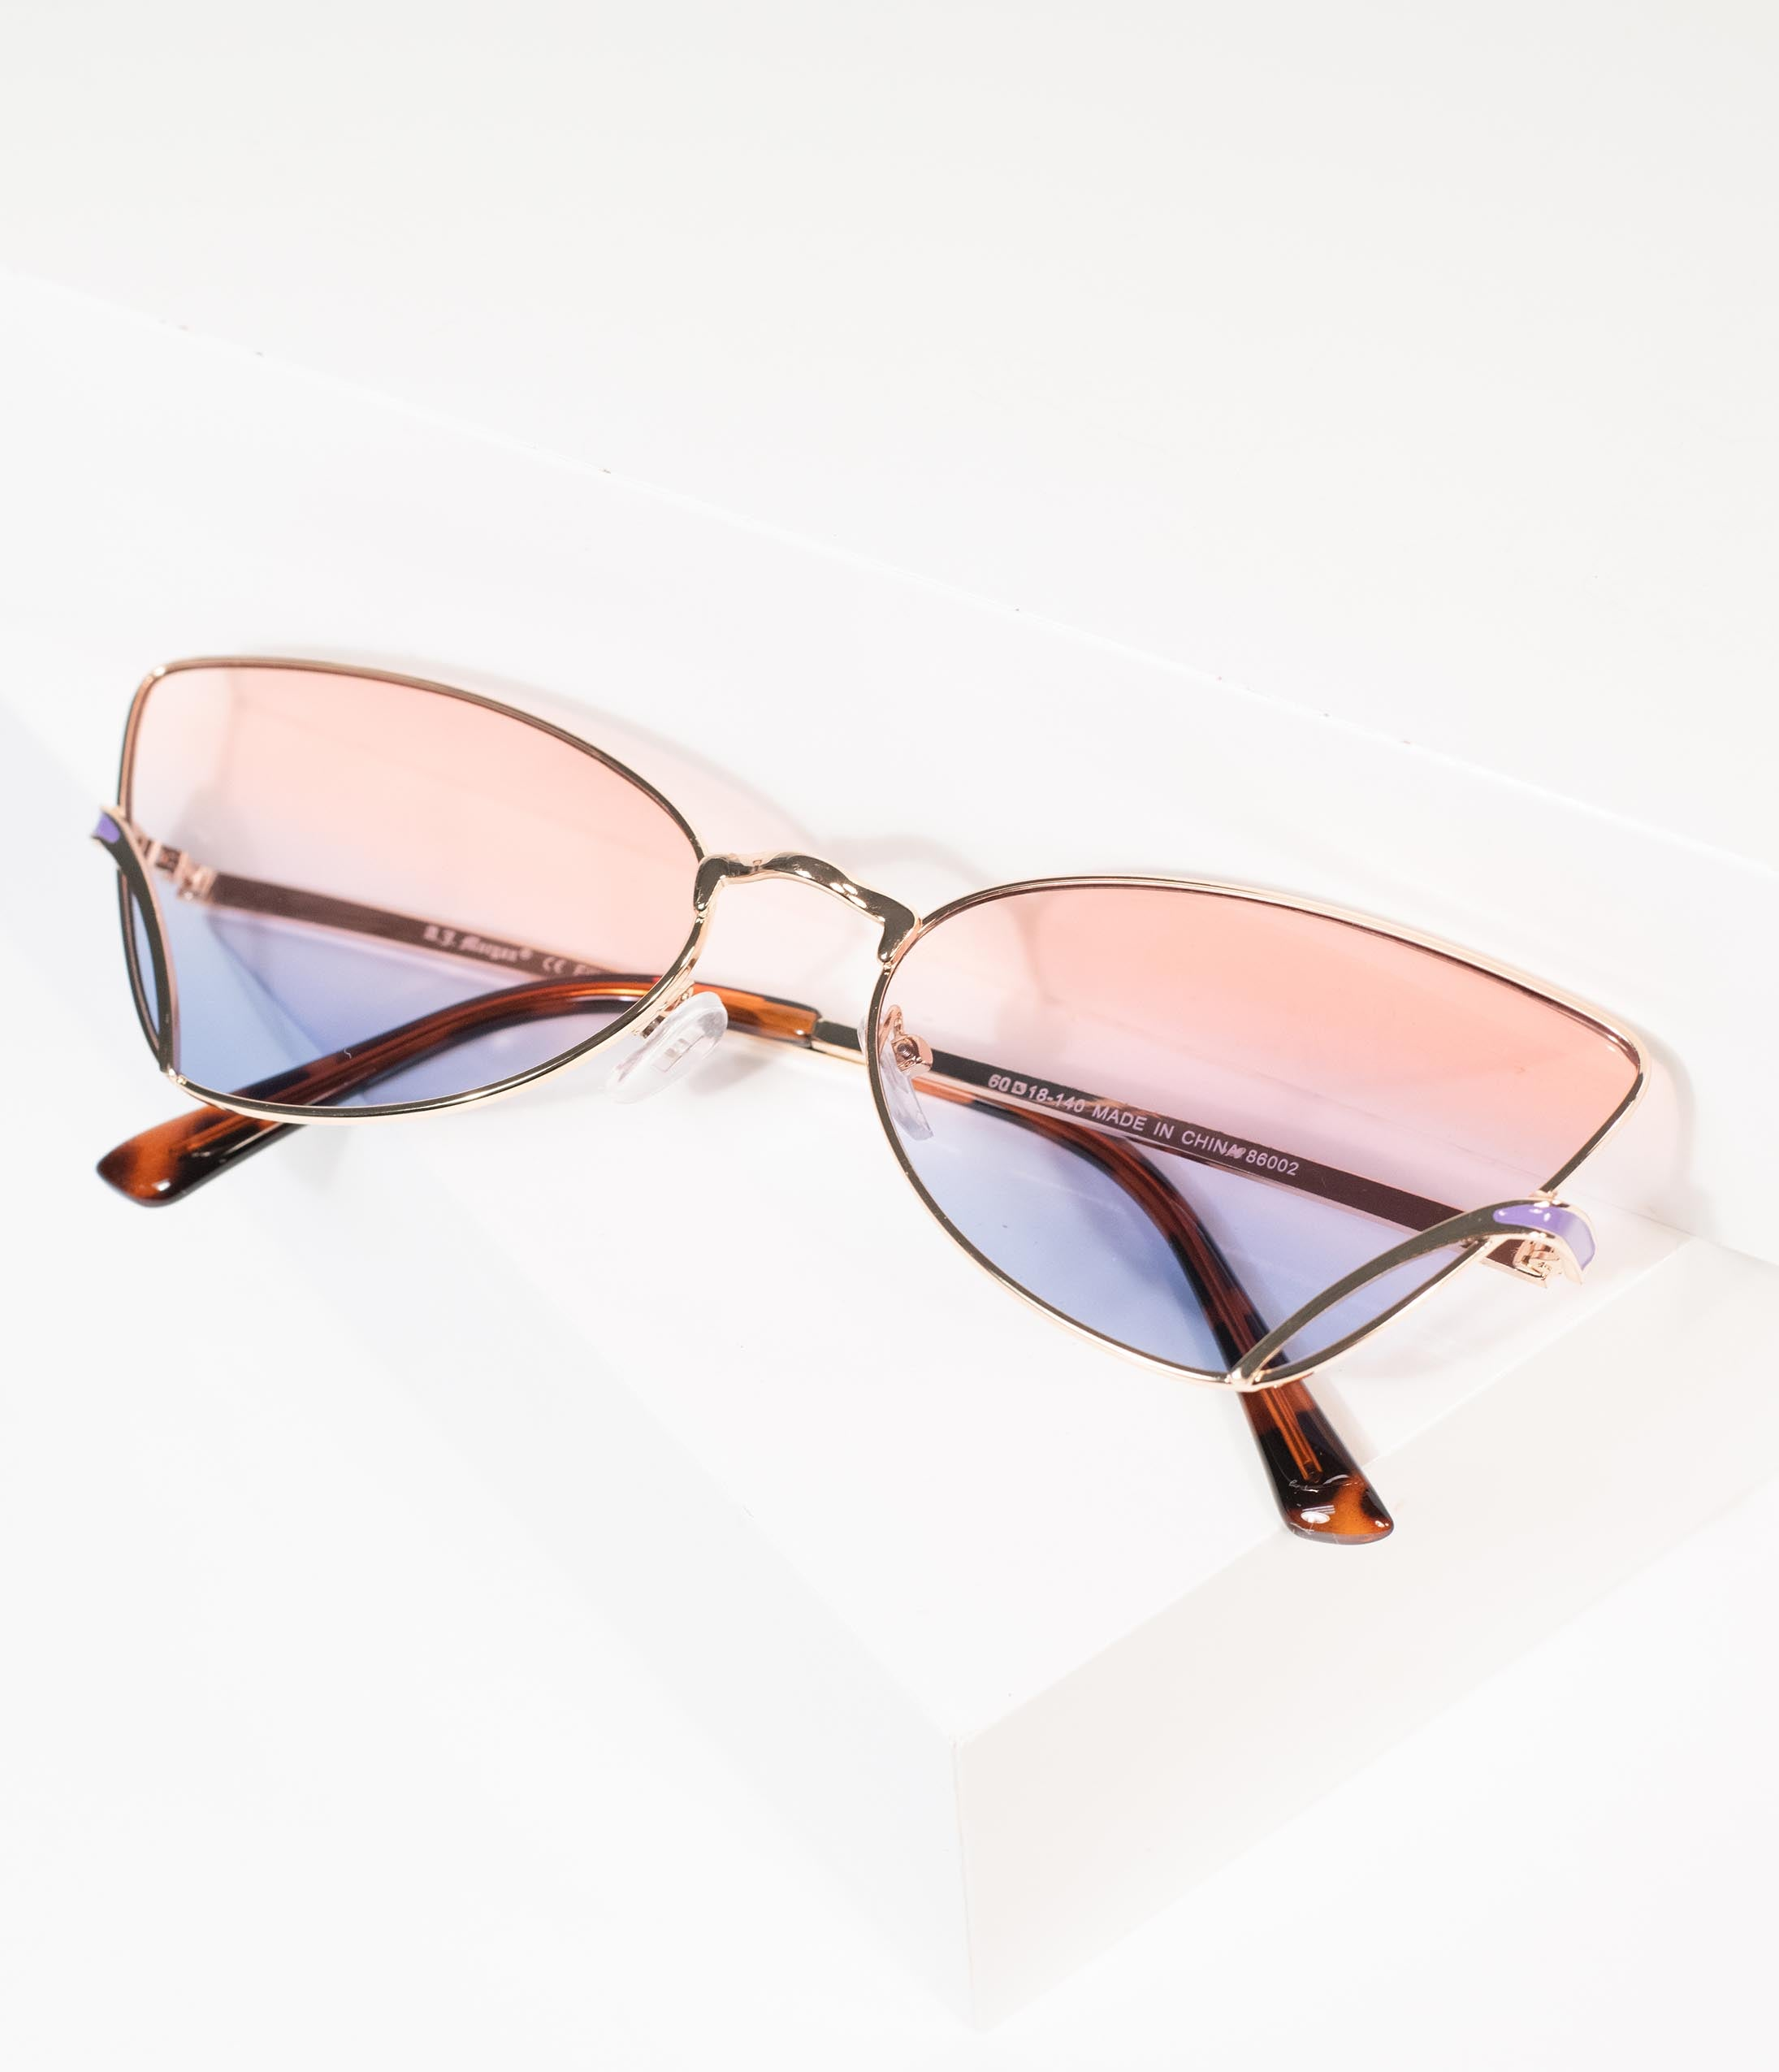 1950s Sunglasses & 50s Glasses | Retro Cat Eye Sunglasses Rose Gold  Purple Hot Rod Sue Cat Eye Sunglasses $24.00 AT vintagedancer.com